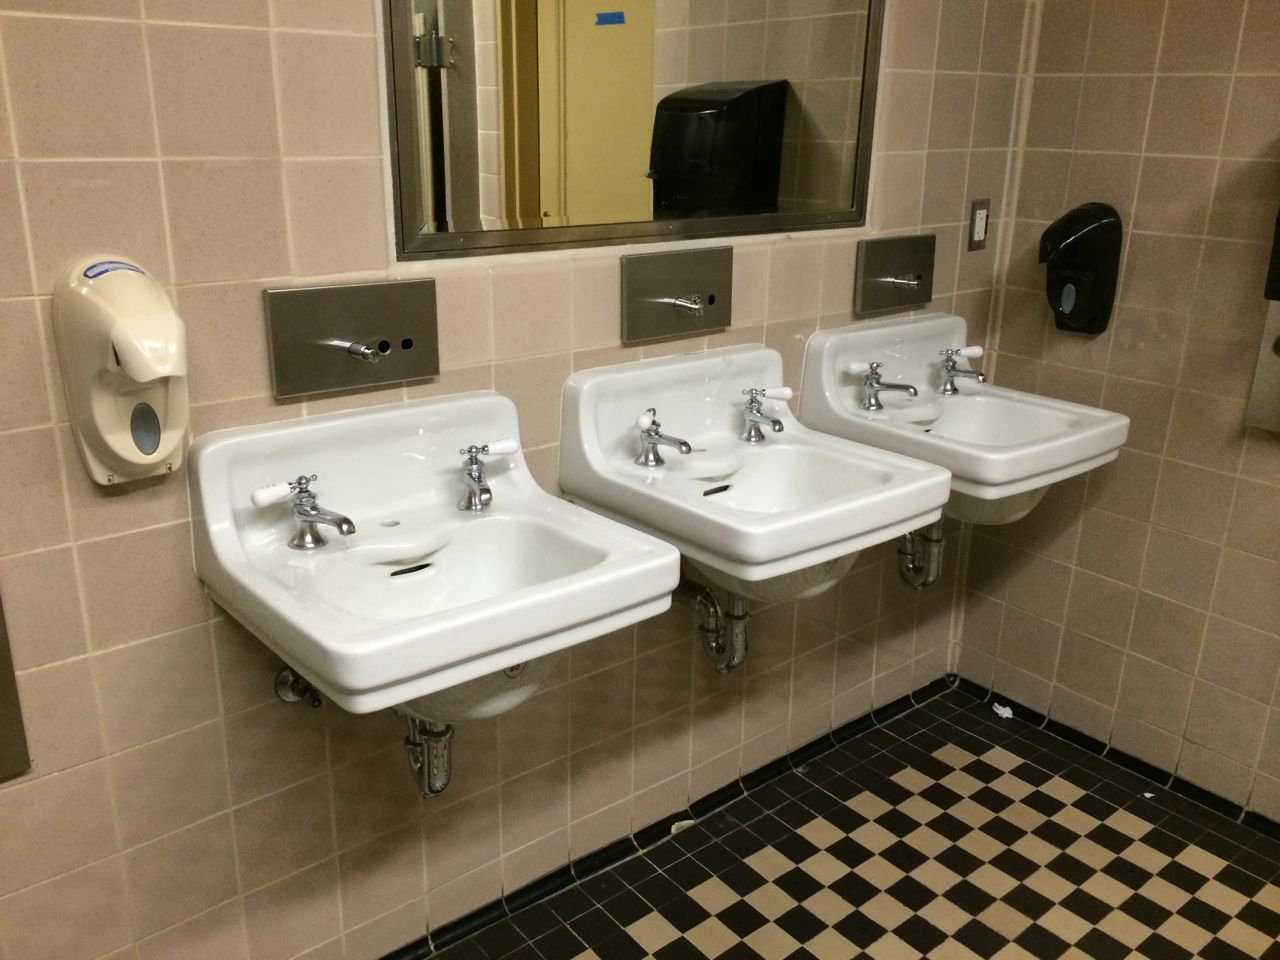 the sinks 3 sinks with separate hot and cold water faucets 2 working soap public bathroom sink t23 sink